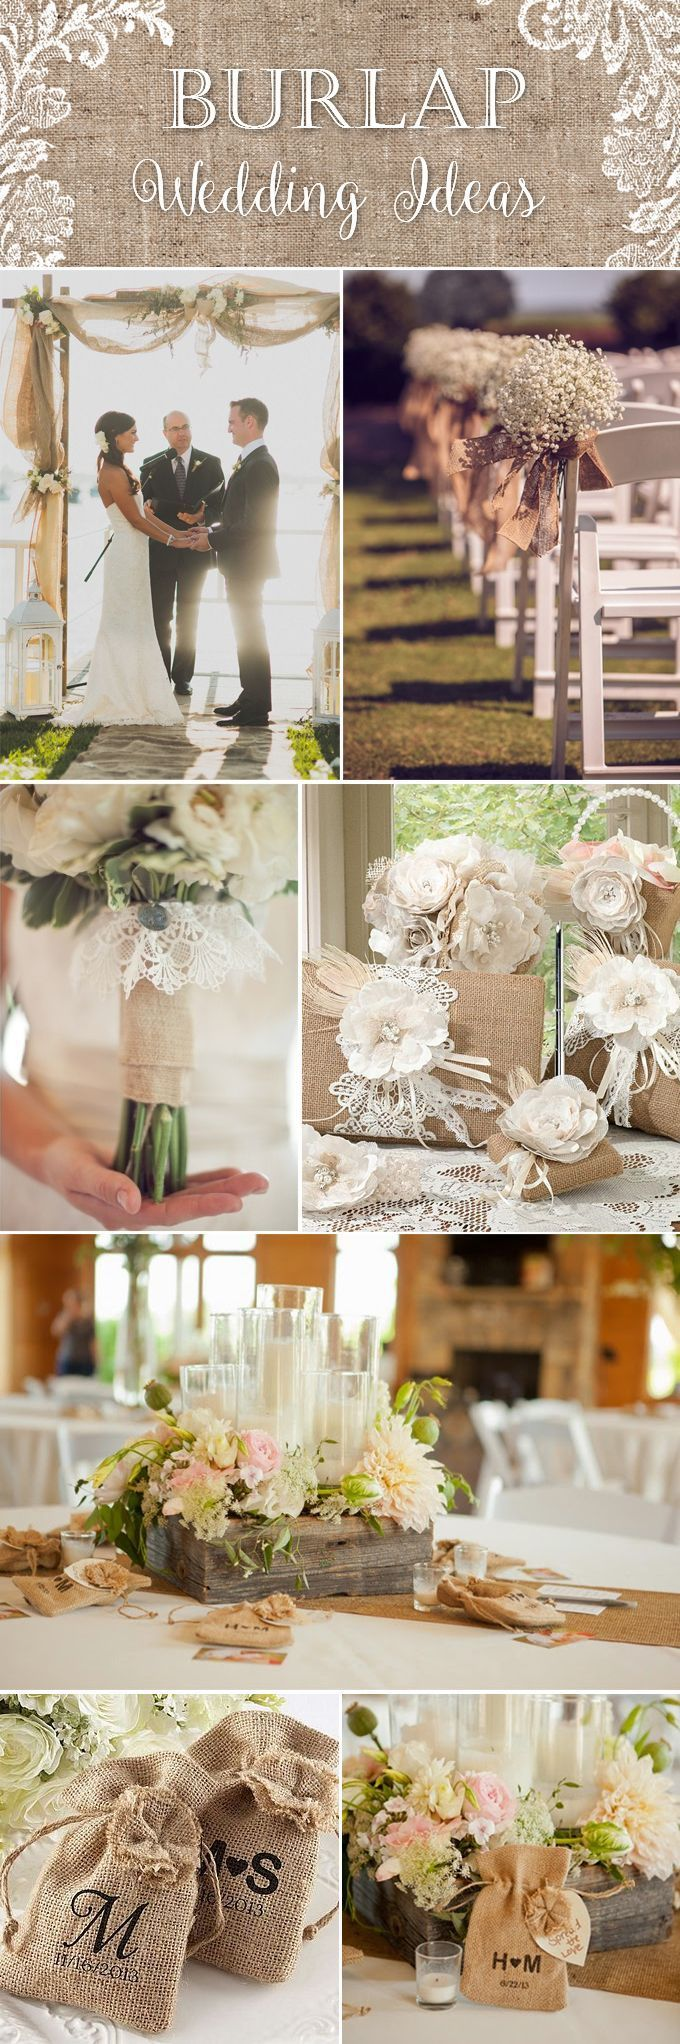 Burlap wedding decorations and ideas - check out these burlap supplies http://www.weddingfavorsunlimited.com/search/quickSearch.php?keywords=burlap&section=&go=&category=All&state=All&submitOk=Ok